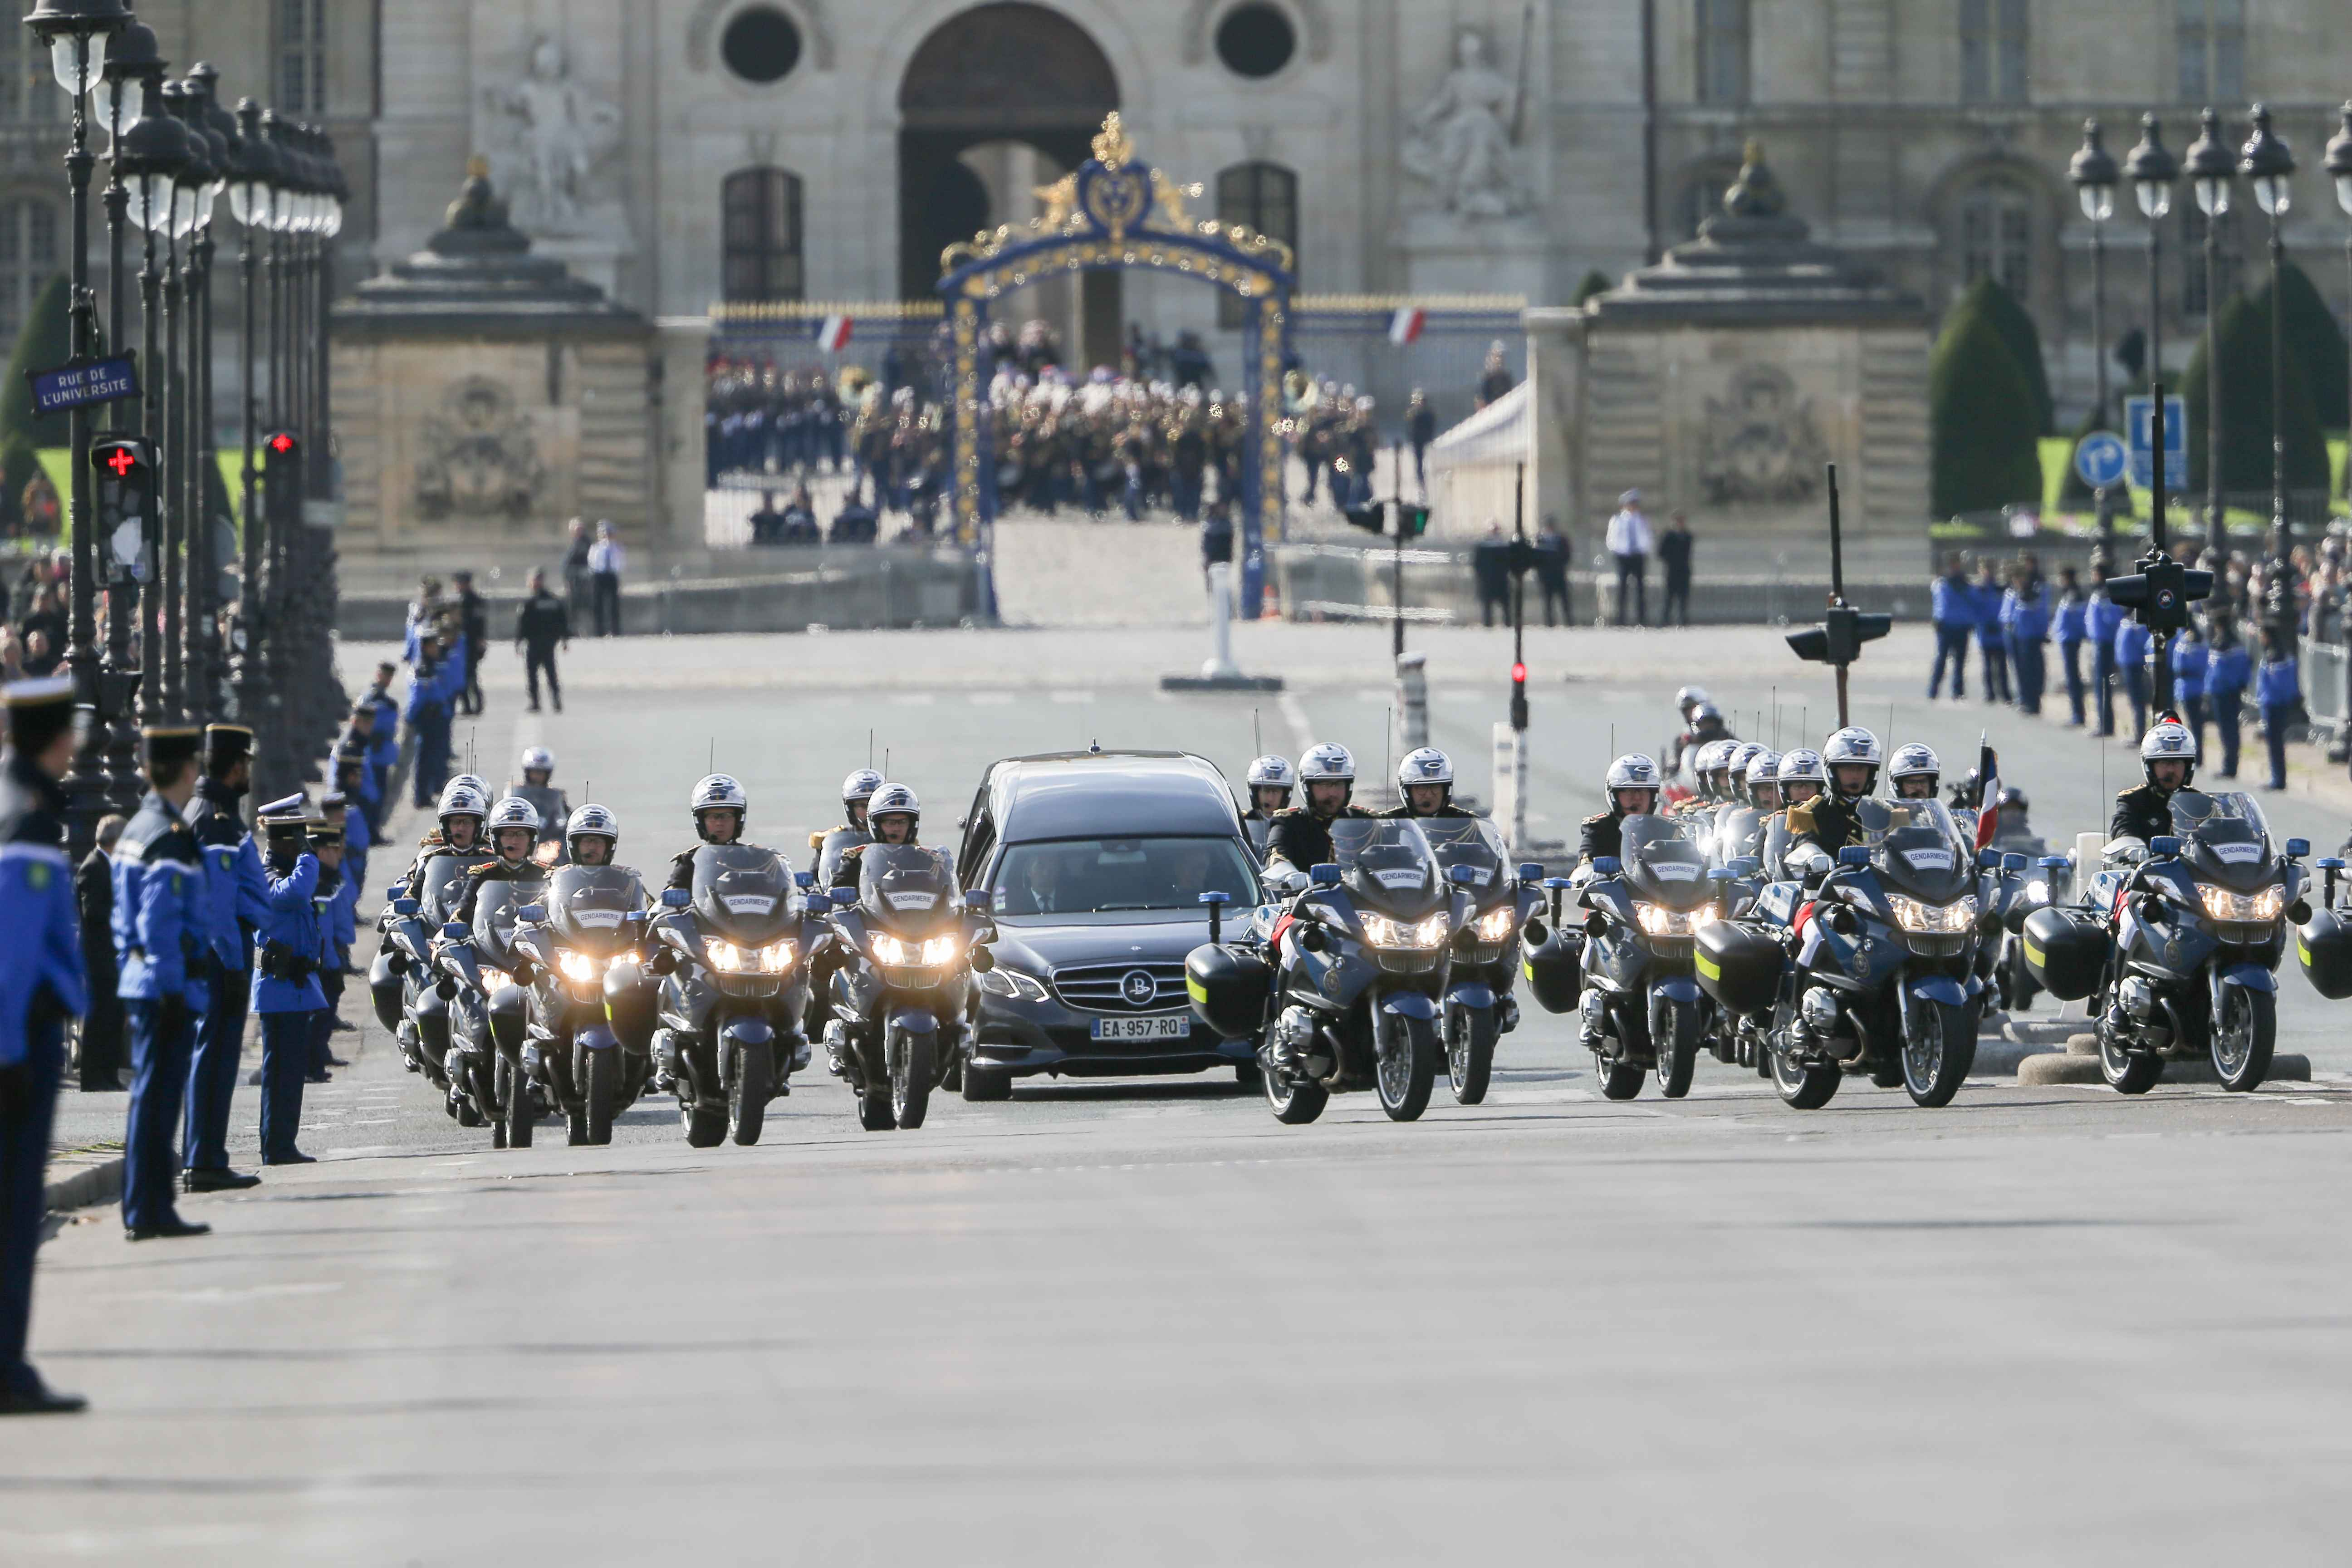 The hearse transporting the coffin of former French President Jacques Chirac leaves the Invalides (Hotel des Invalides) for the Saint-Sulpice church in Paris for the funeral service on September 30, 2019. Former French President Jacques Chirac died on Sept